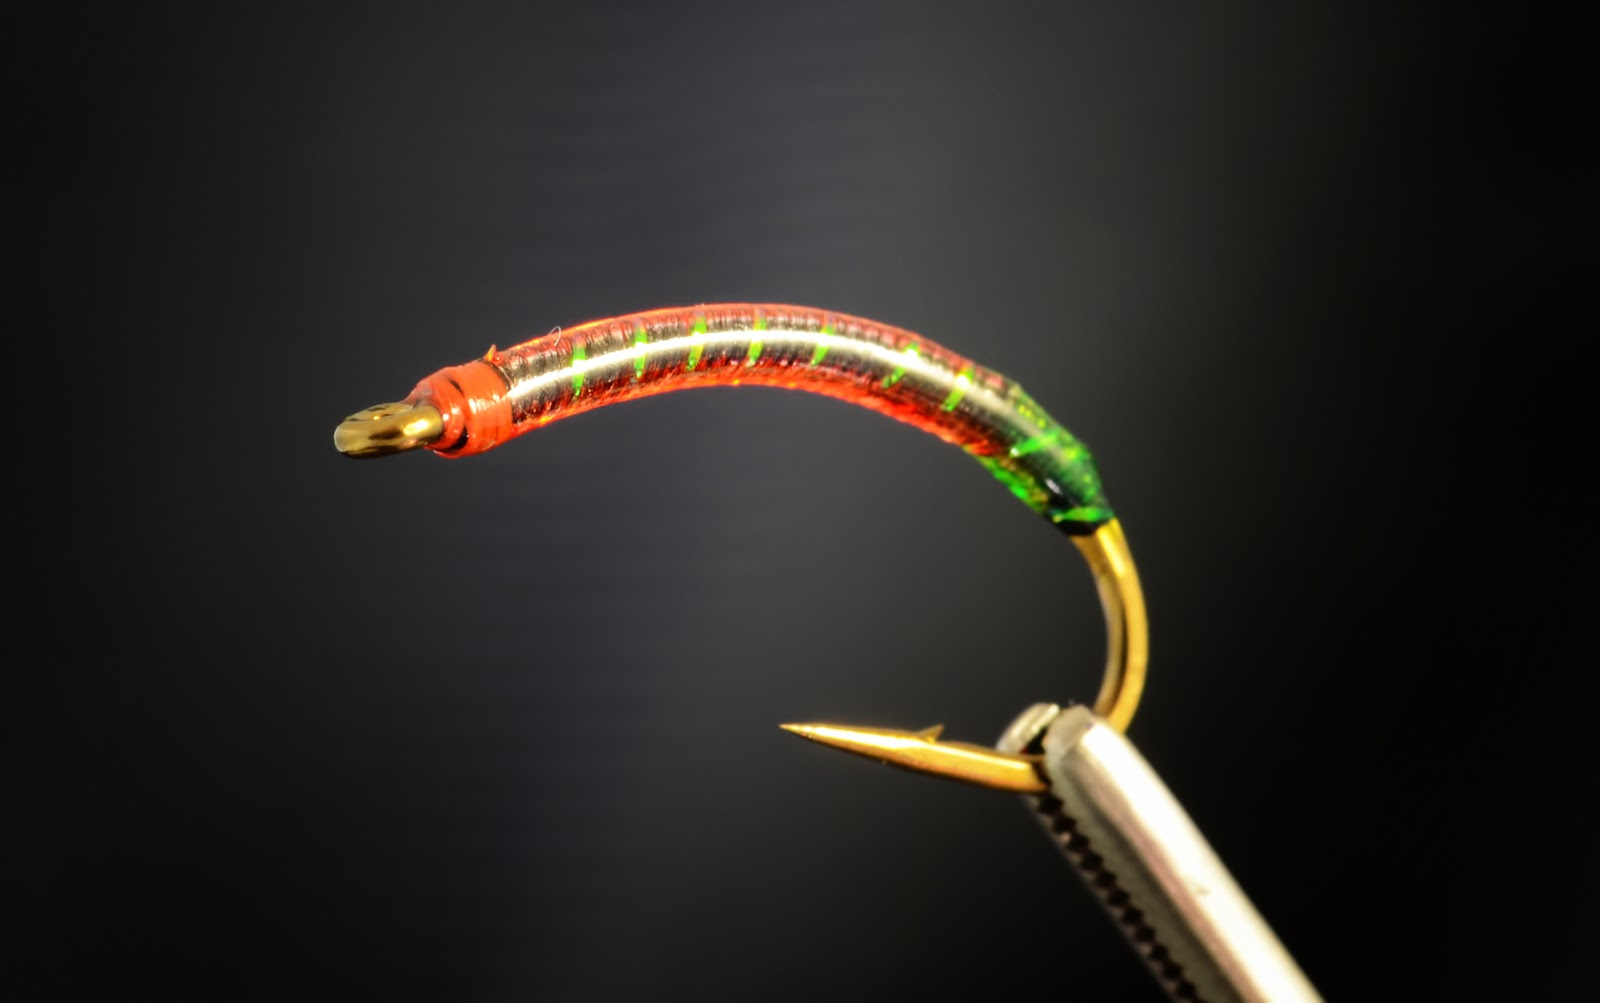 the gut bomb bloodworm fly fish food fly tying and